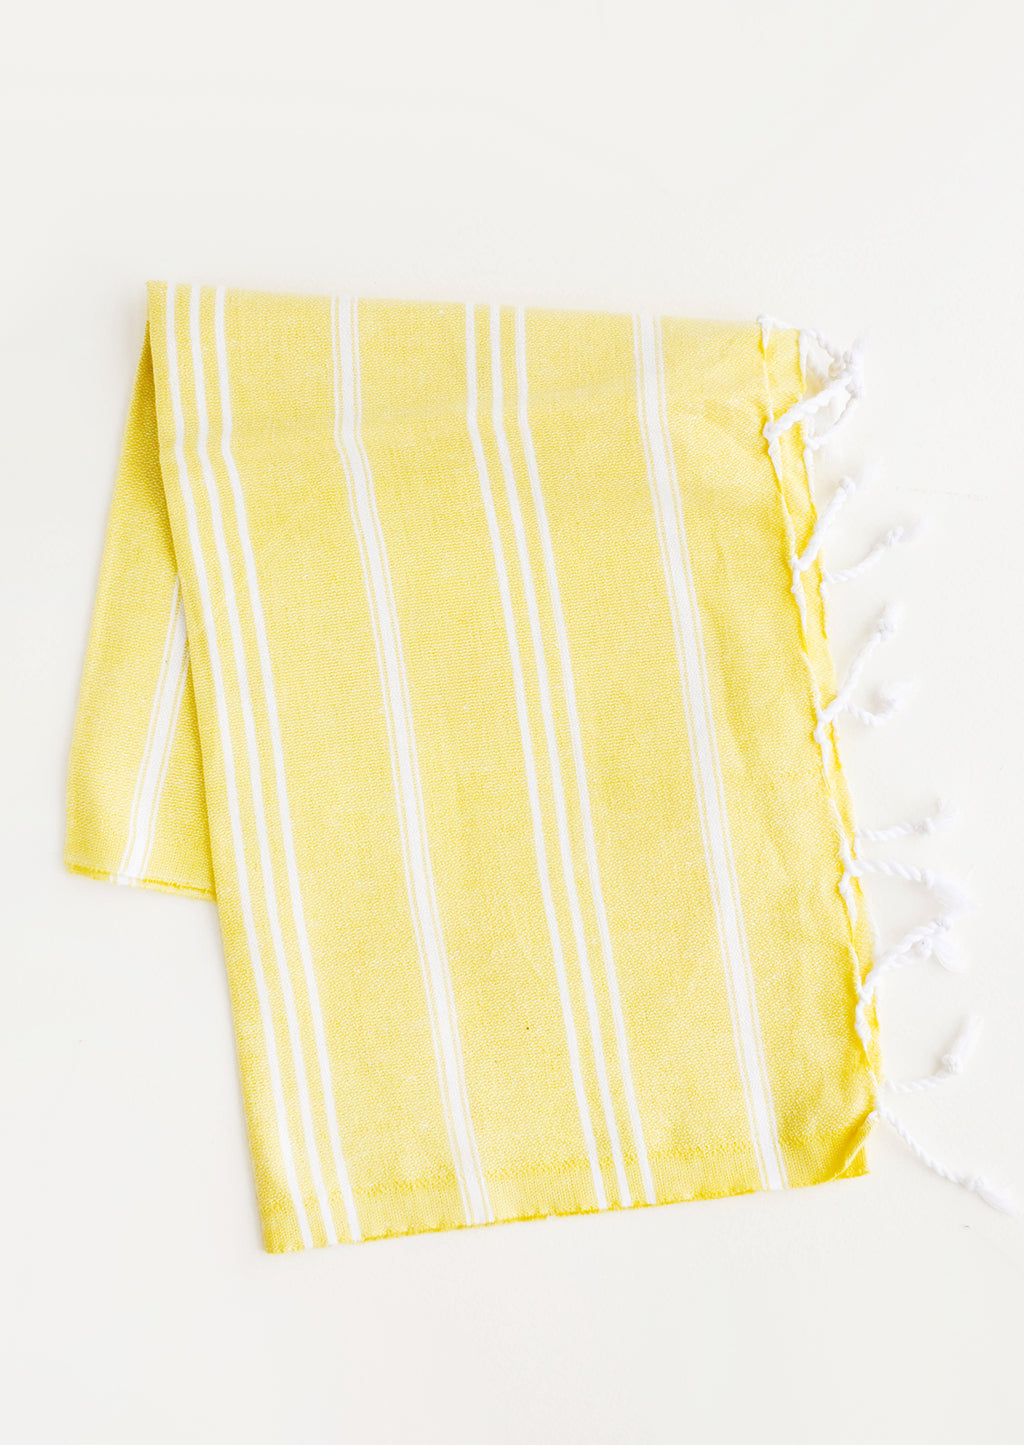 Yellow / Hand Towel: Cotton towel with white stripes in yellow, twisted fringe on ends